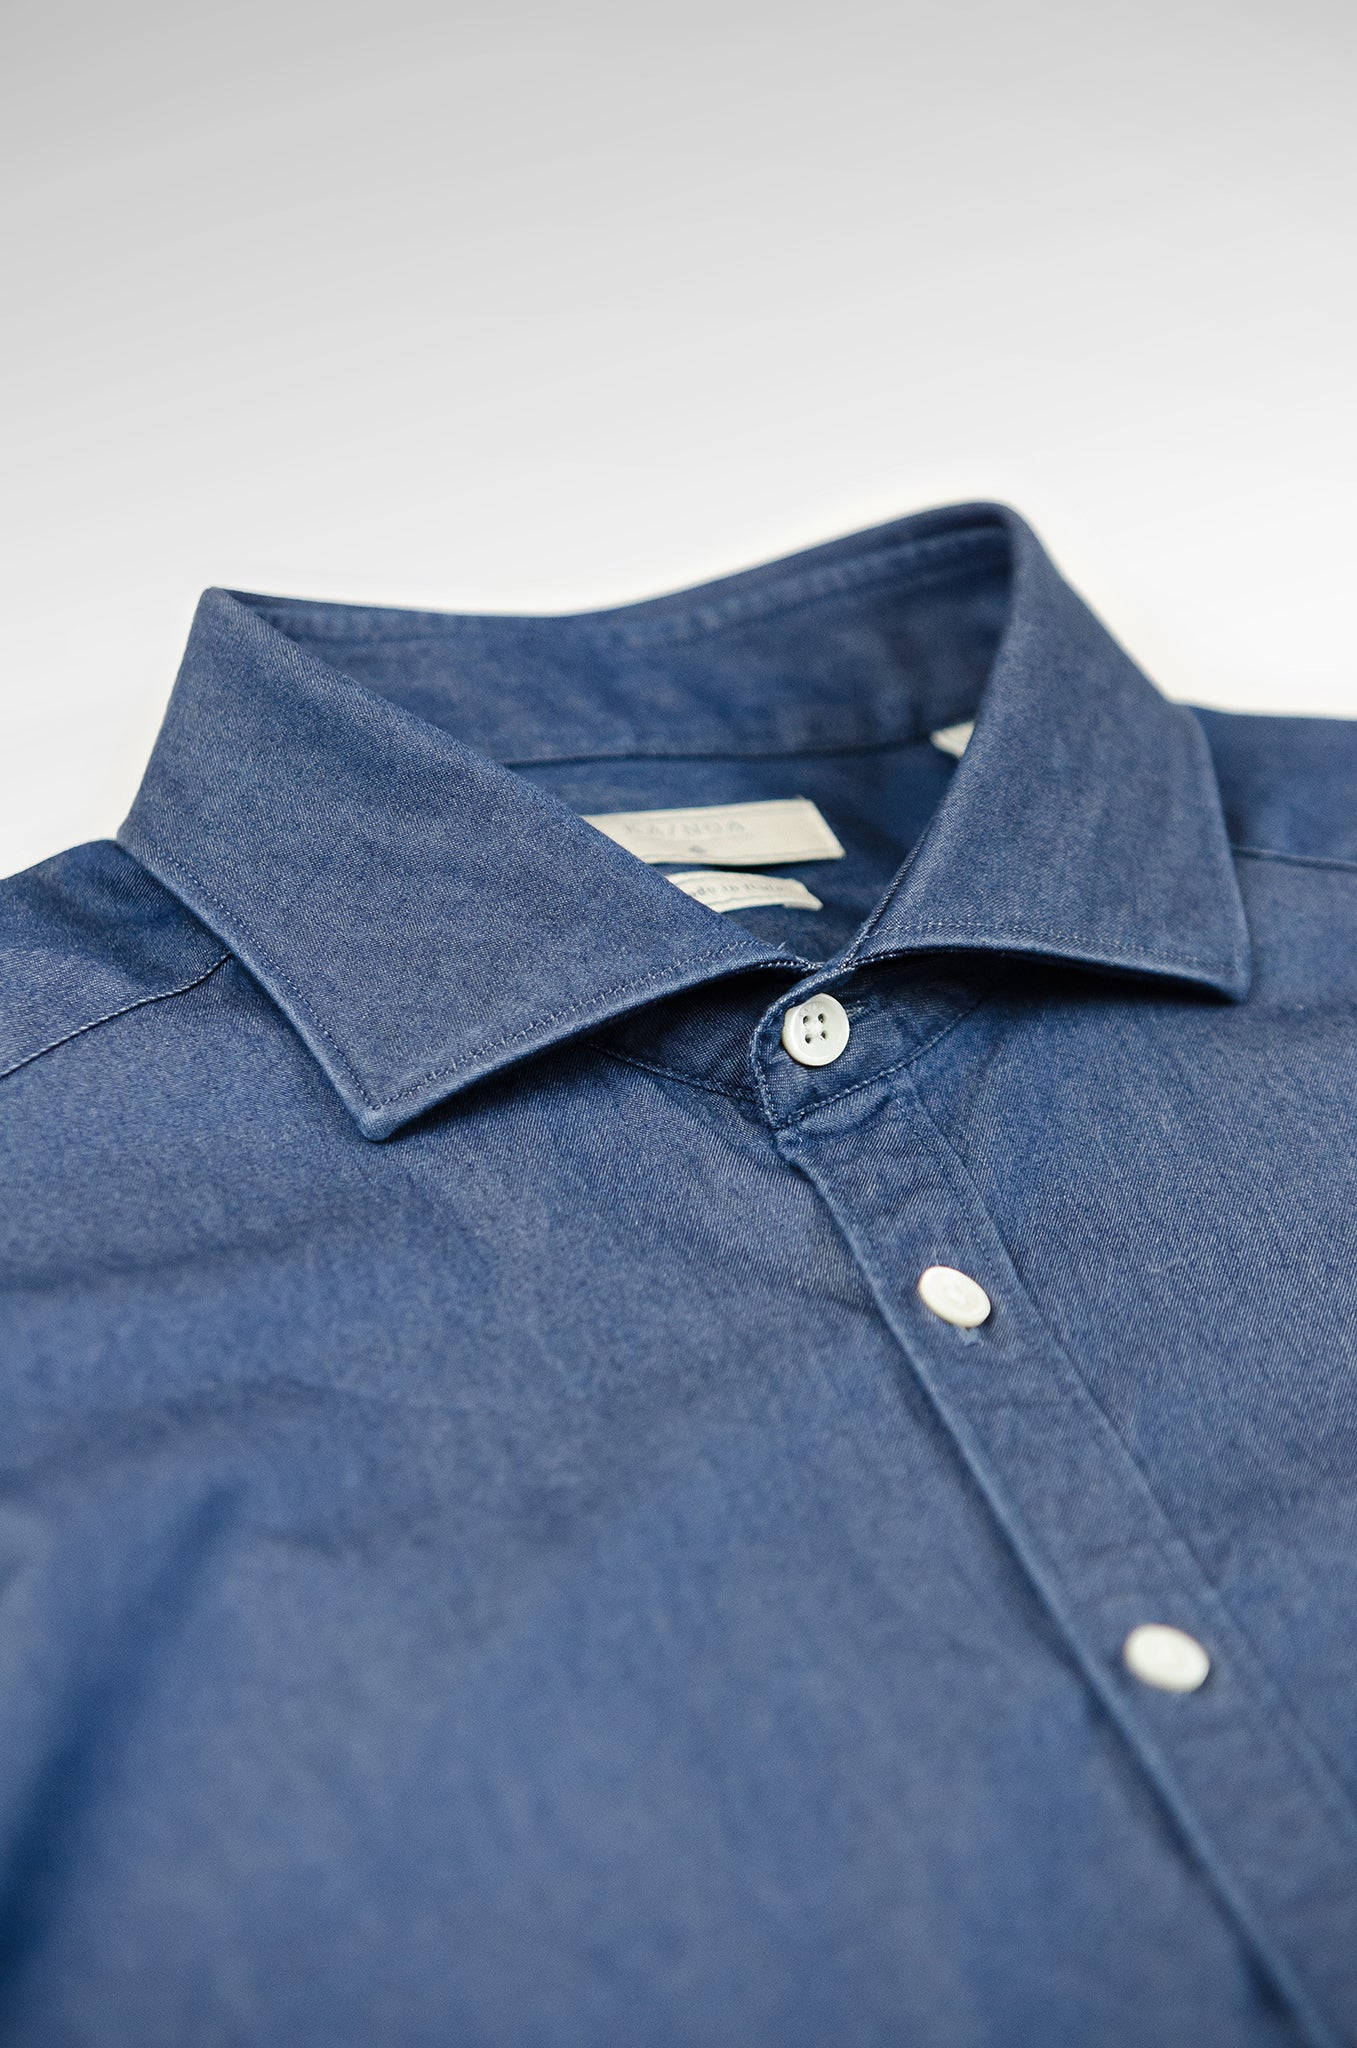 Clodoveu Soft Light Denim Shirt (ocean blue)